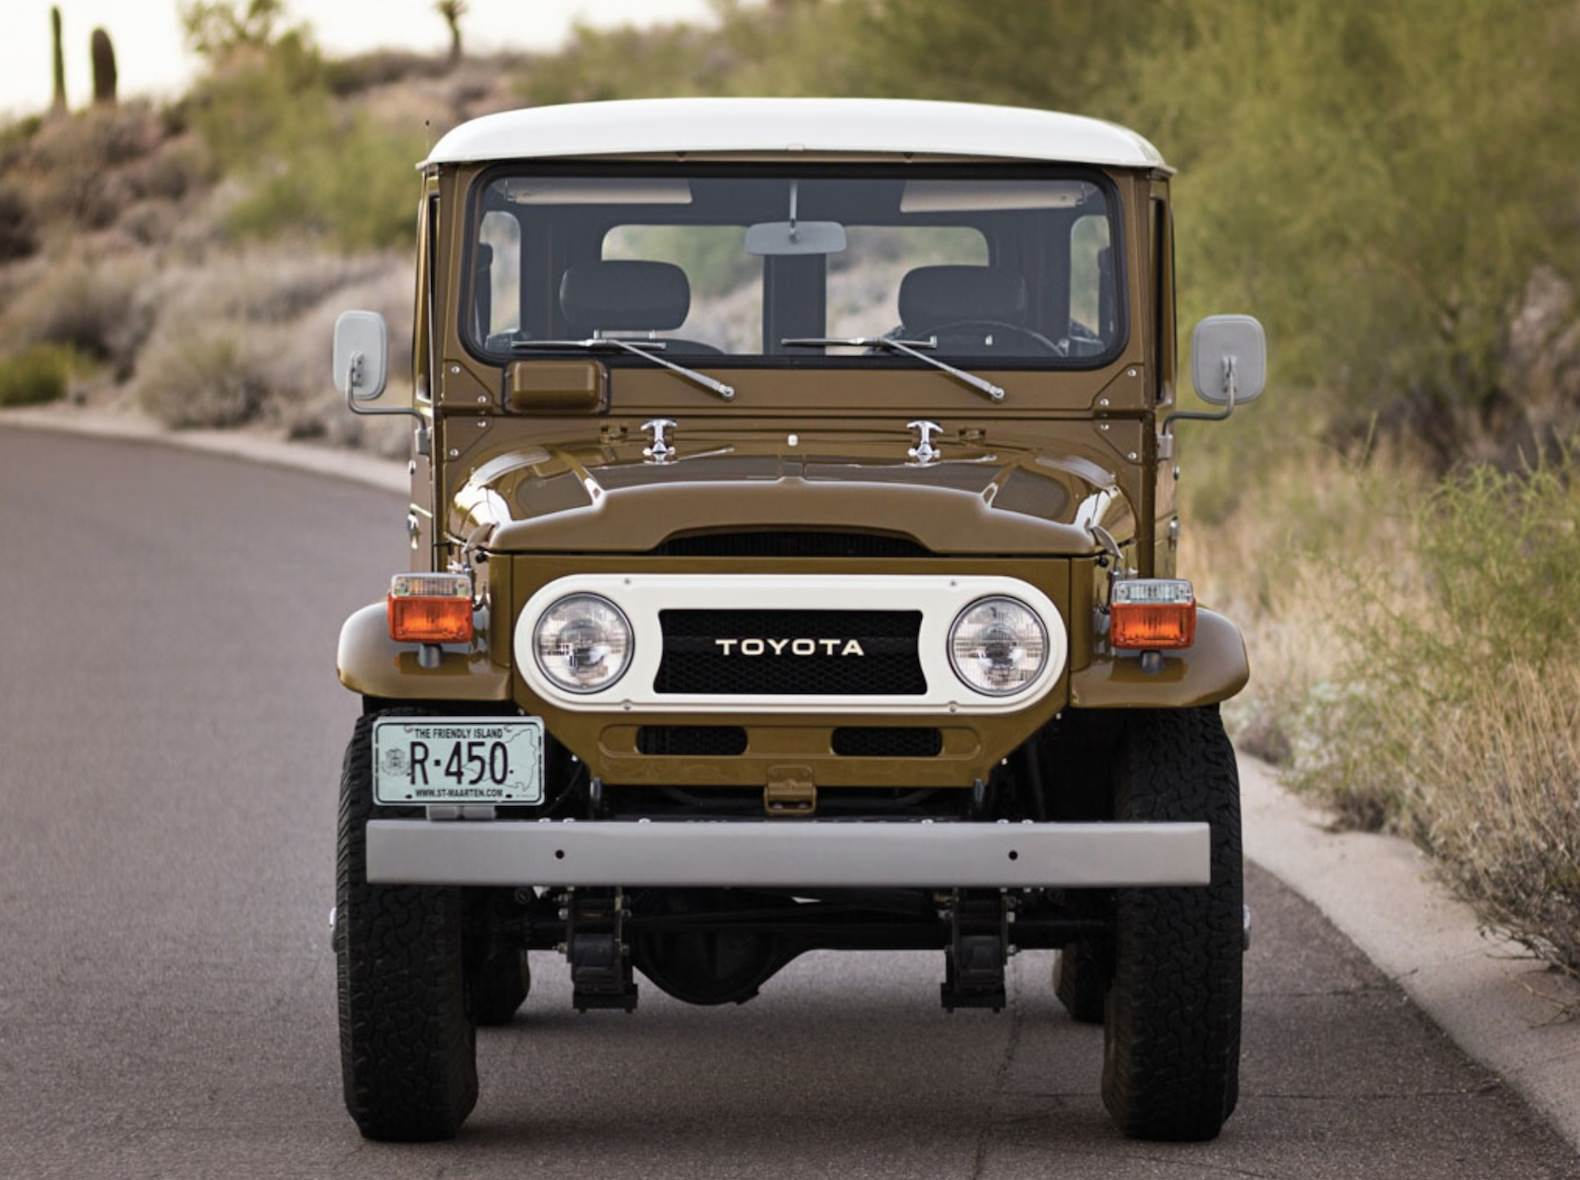 Badass Trucks & Cool SUVs - 1977 Toyota FJ40 Land Cruiser